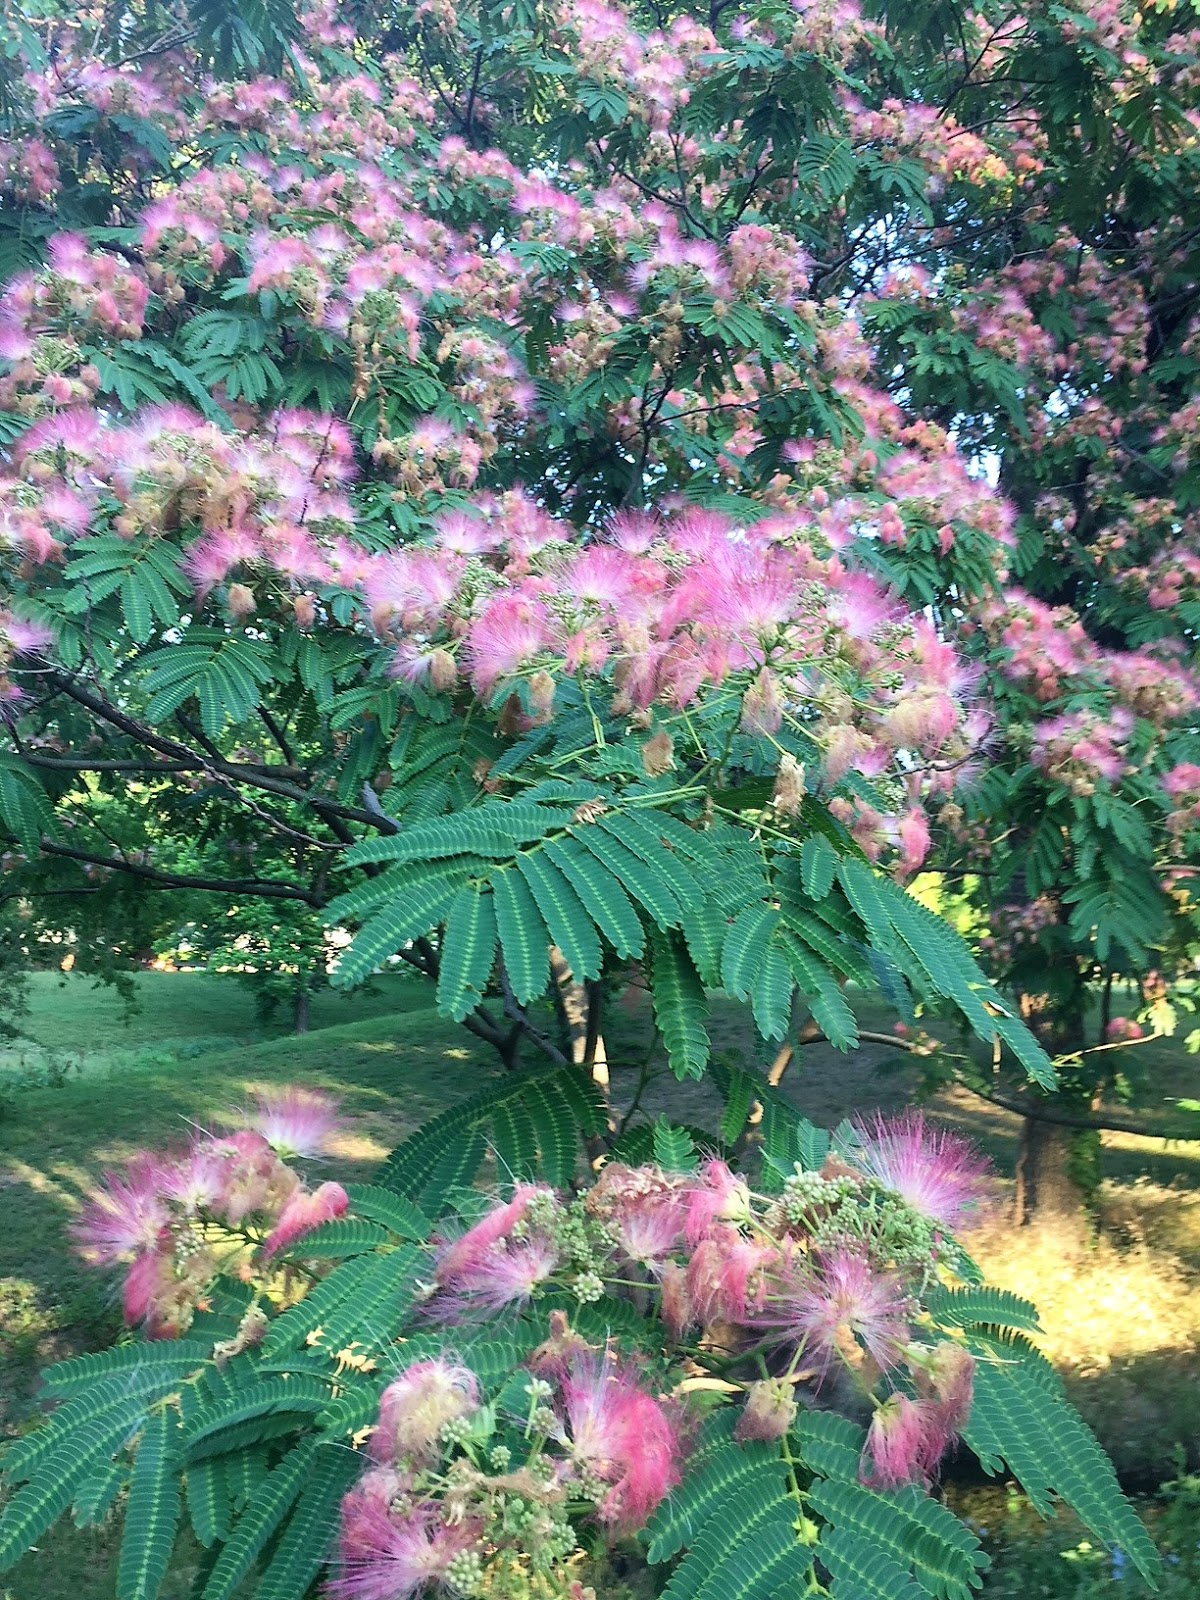 The Fragrant Journey Scented Paths The Smell Of Texas Mimosa Or